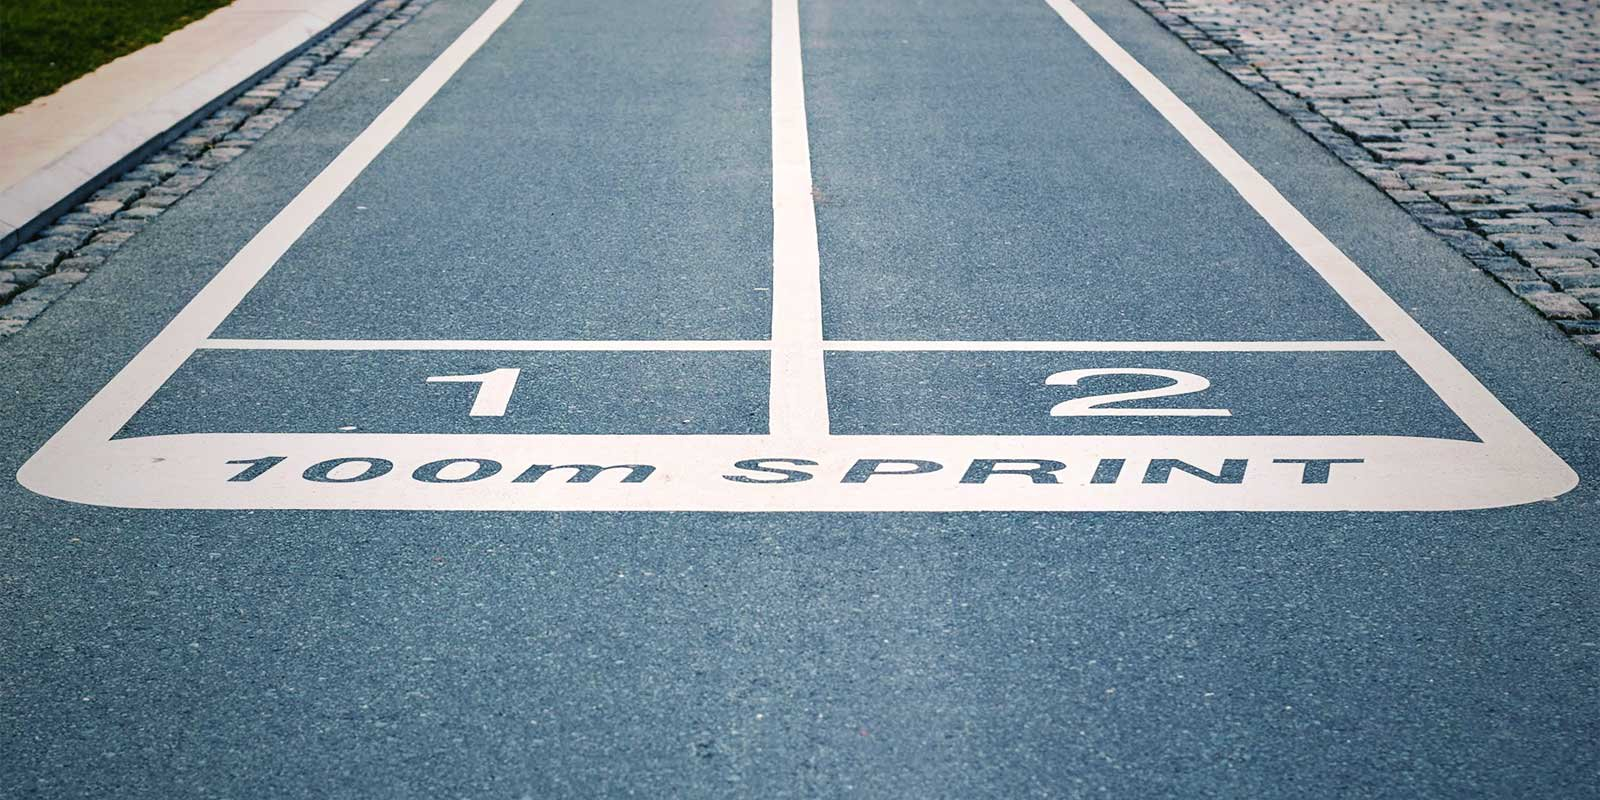 Starting line of a 100m sprint track